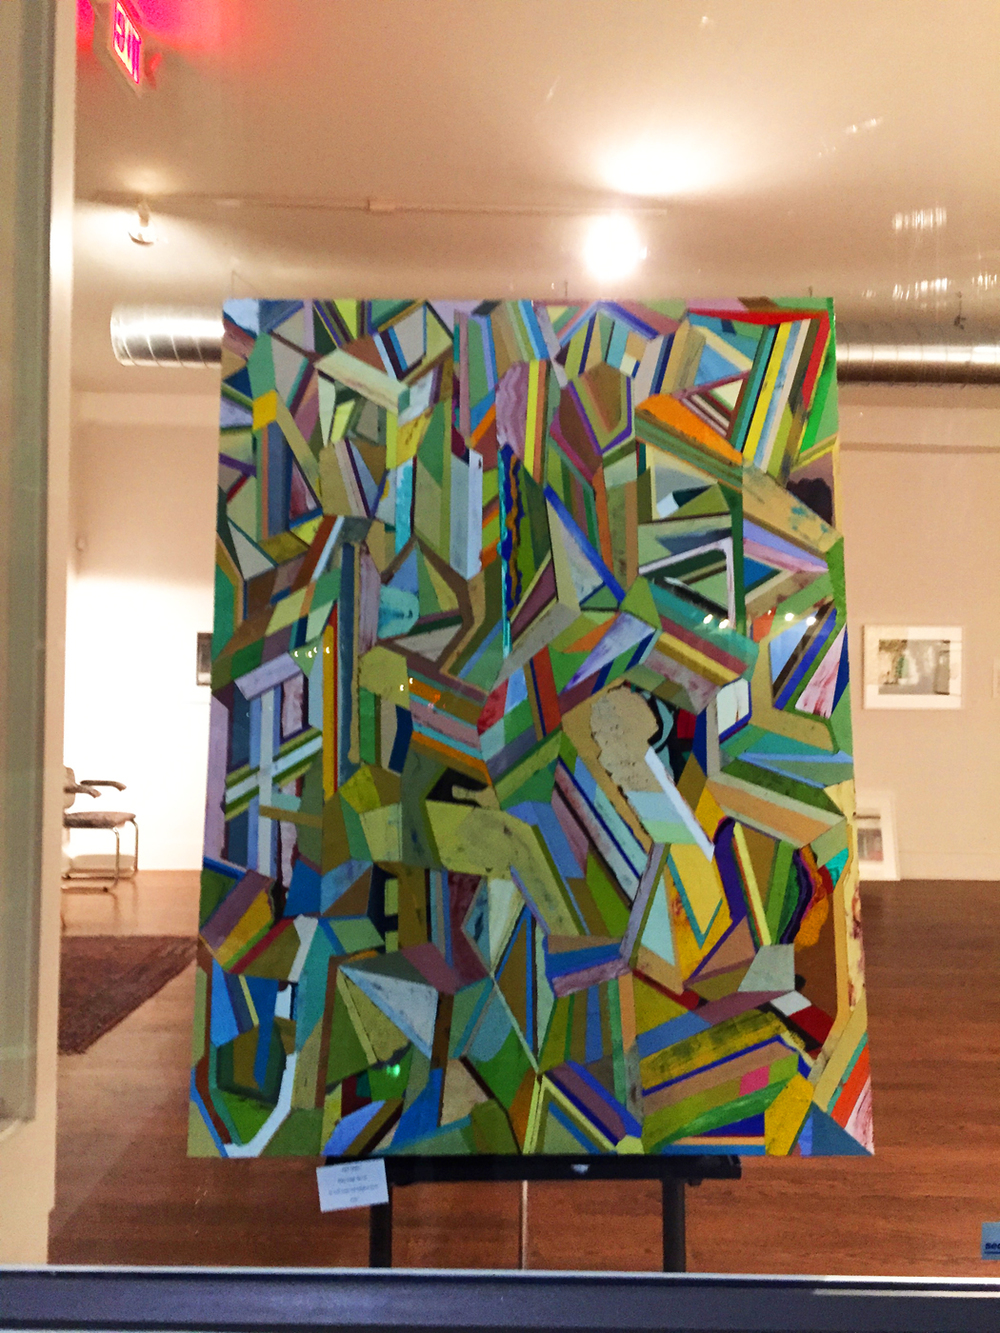 The George Gallery, Piece by Paul Yanko